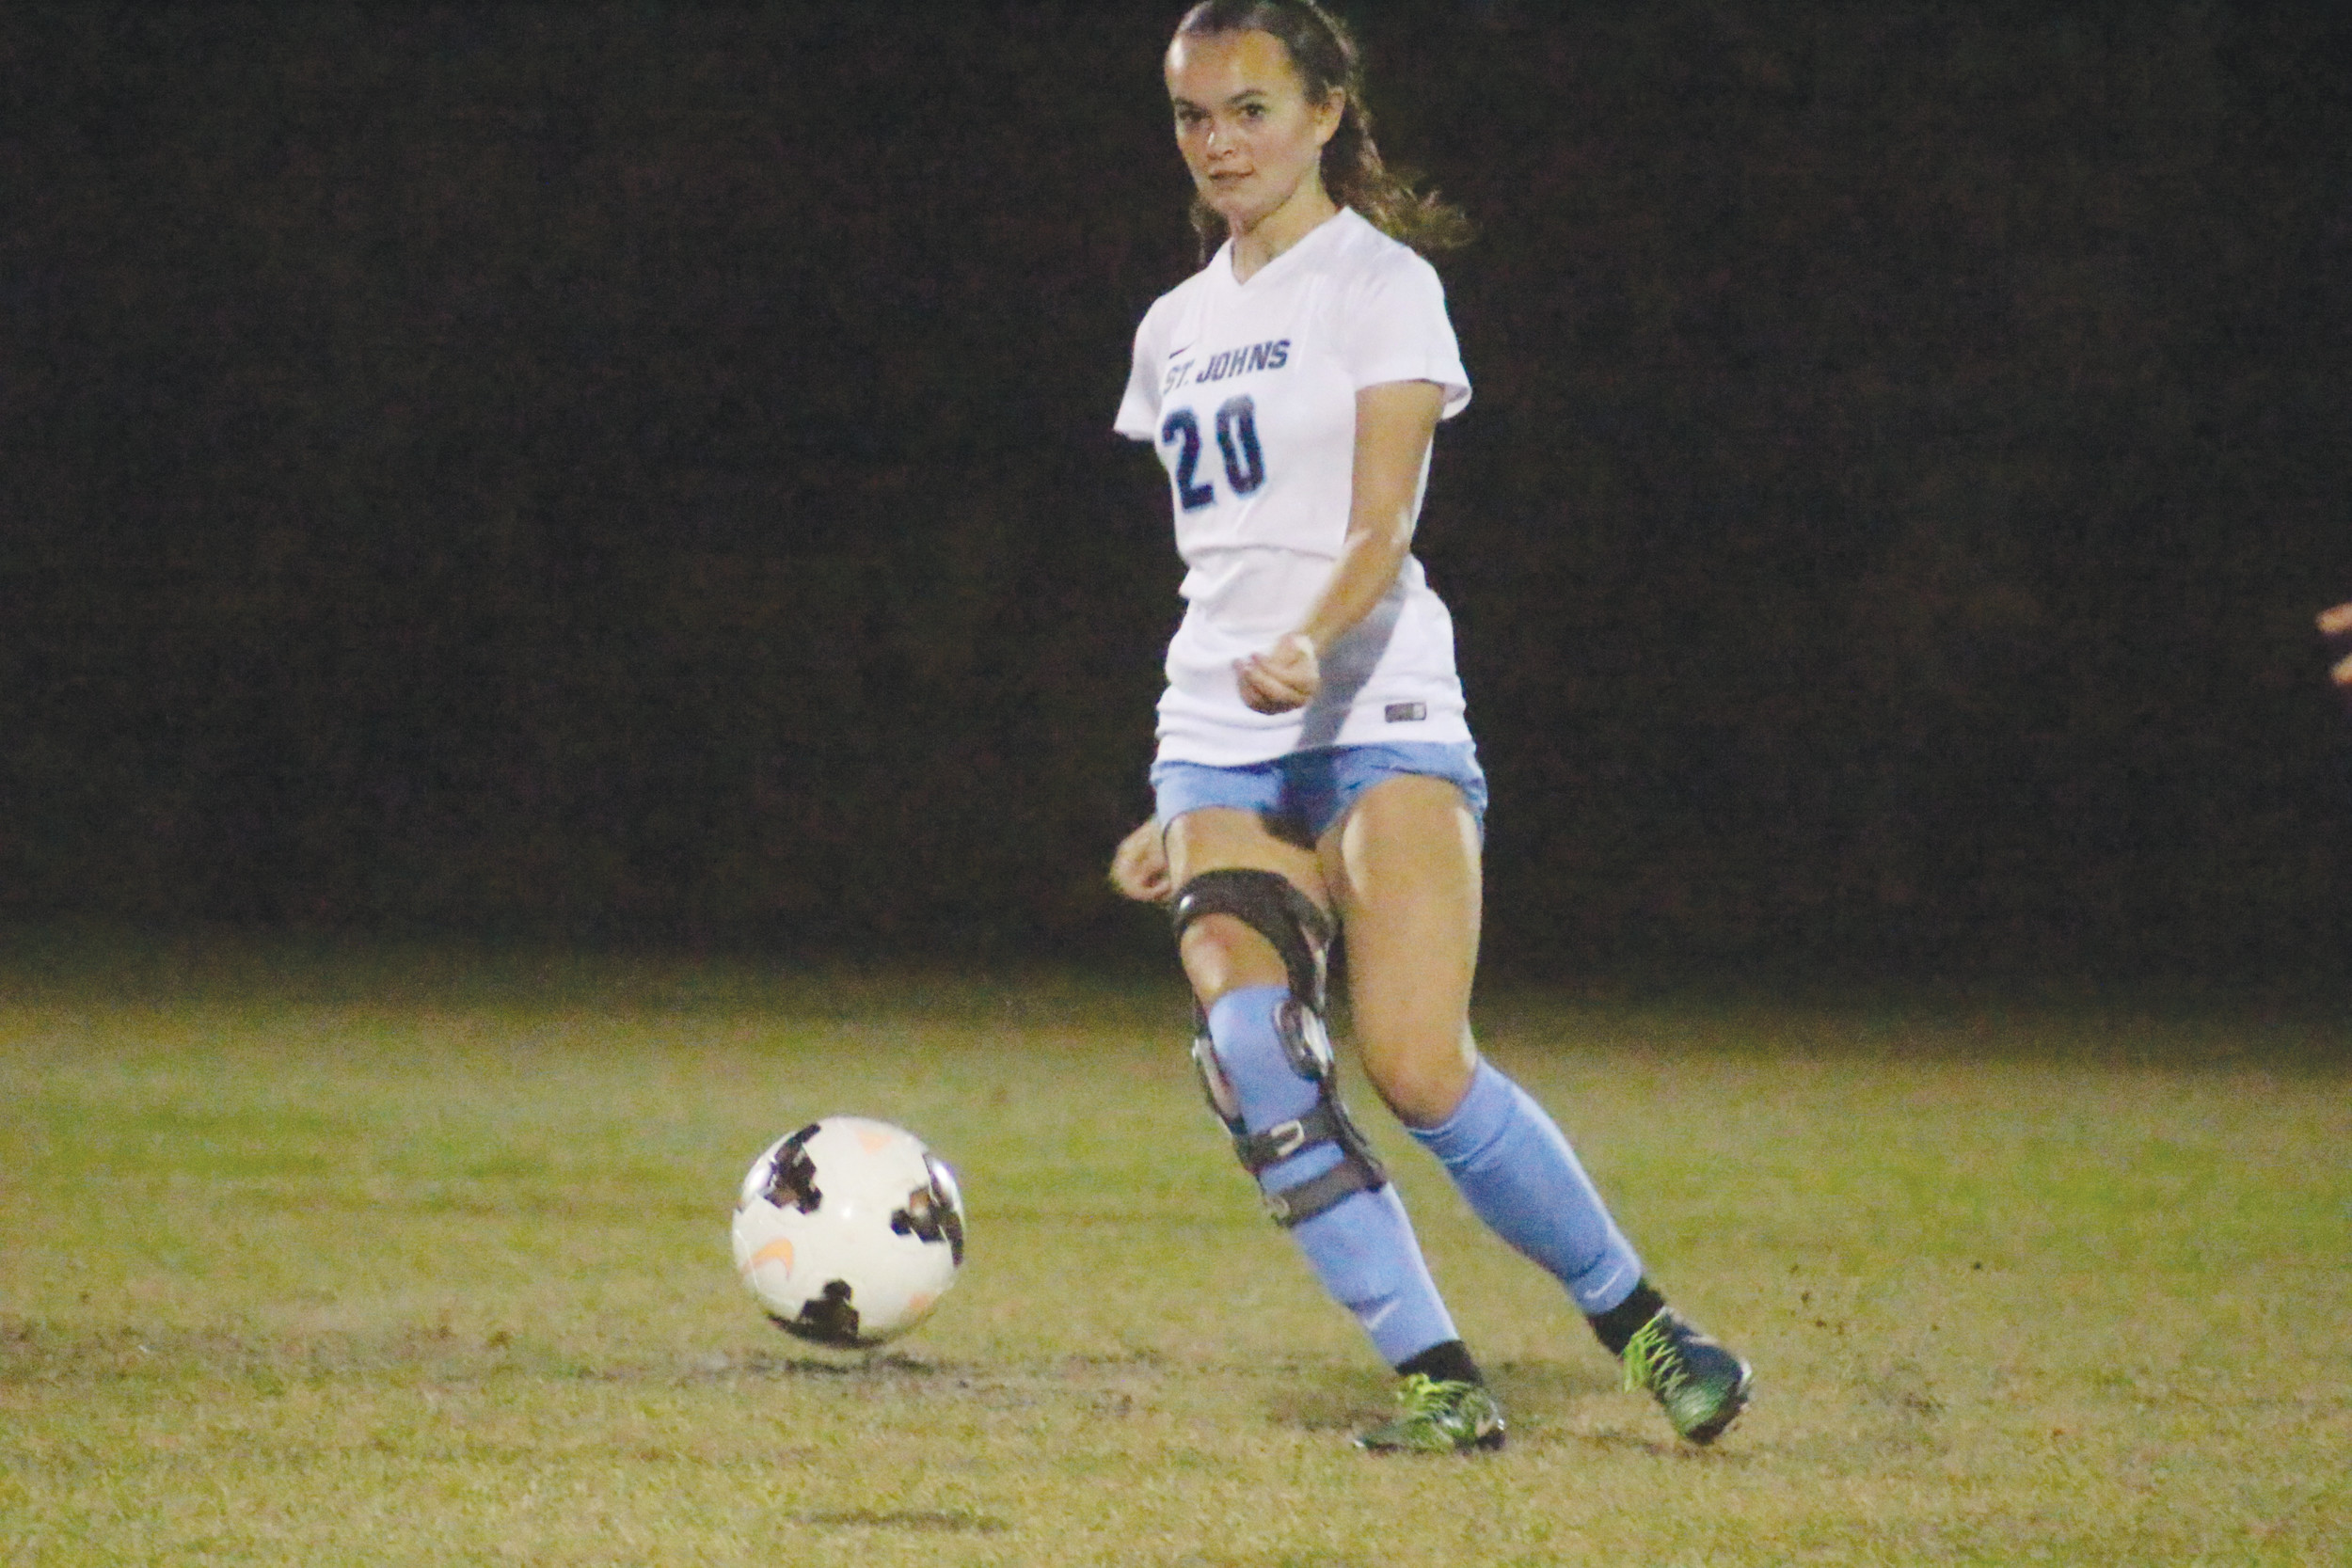 St. Johns Country Day School midfielder Abby Newton has returned from a knee injury to give the Lady Spartans more firepower for a fifth straight Class 1A title for coach Mike Pickett.